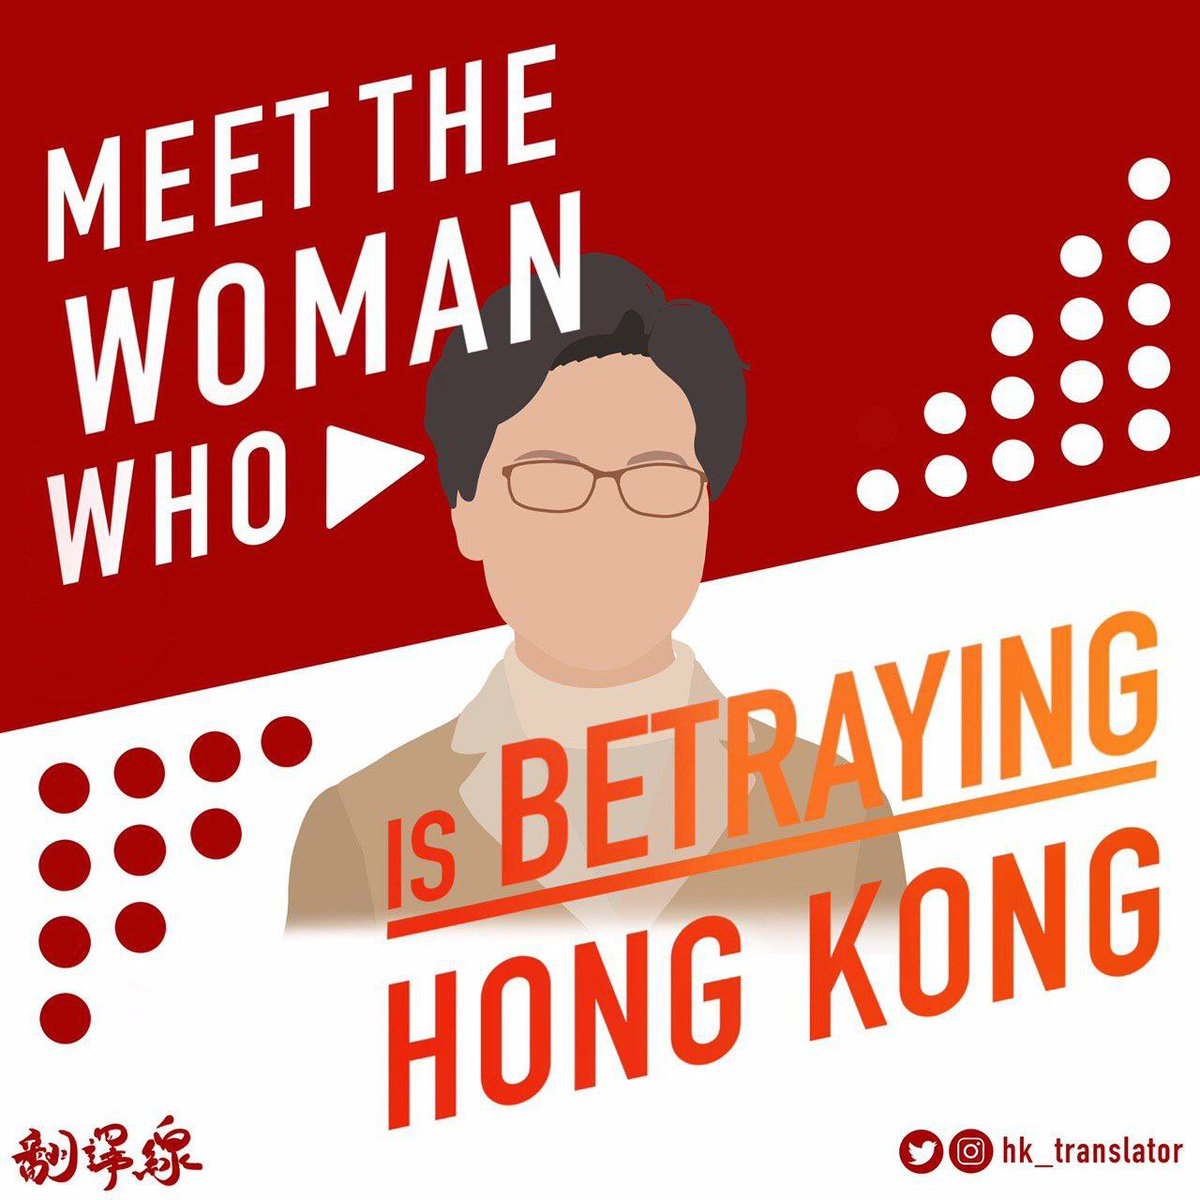 How did Carrie Lam betray Hong Kong since the 2019 Anti-extradition bill protest? Not only ignoring citizens' demands, but also putting overpowered local legislation... #hk #HKprotests #hongkong #HKPolice #hkpolicebruality #HKPoliceTerrorists #hkpolicestate #NationalSecurityLaw https://t.co/H4VxszN7qB